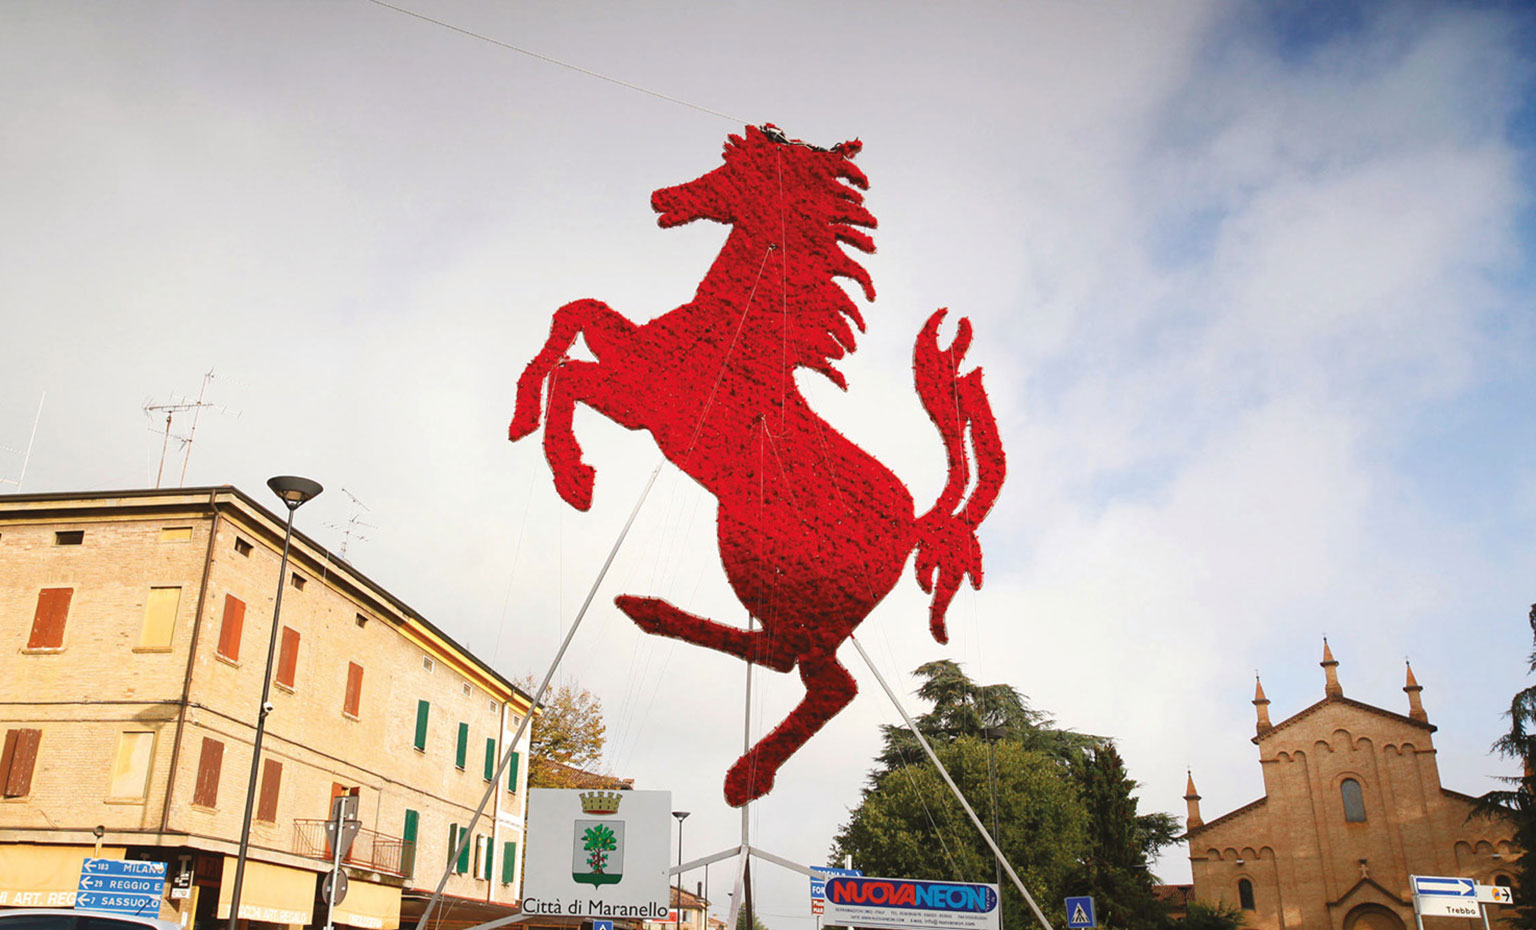 Maranello is a must-visit place for the Ferrari fan, with its test track and museum